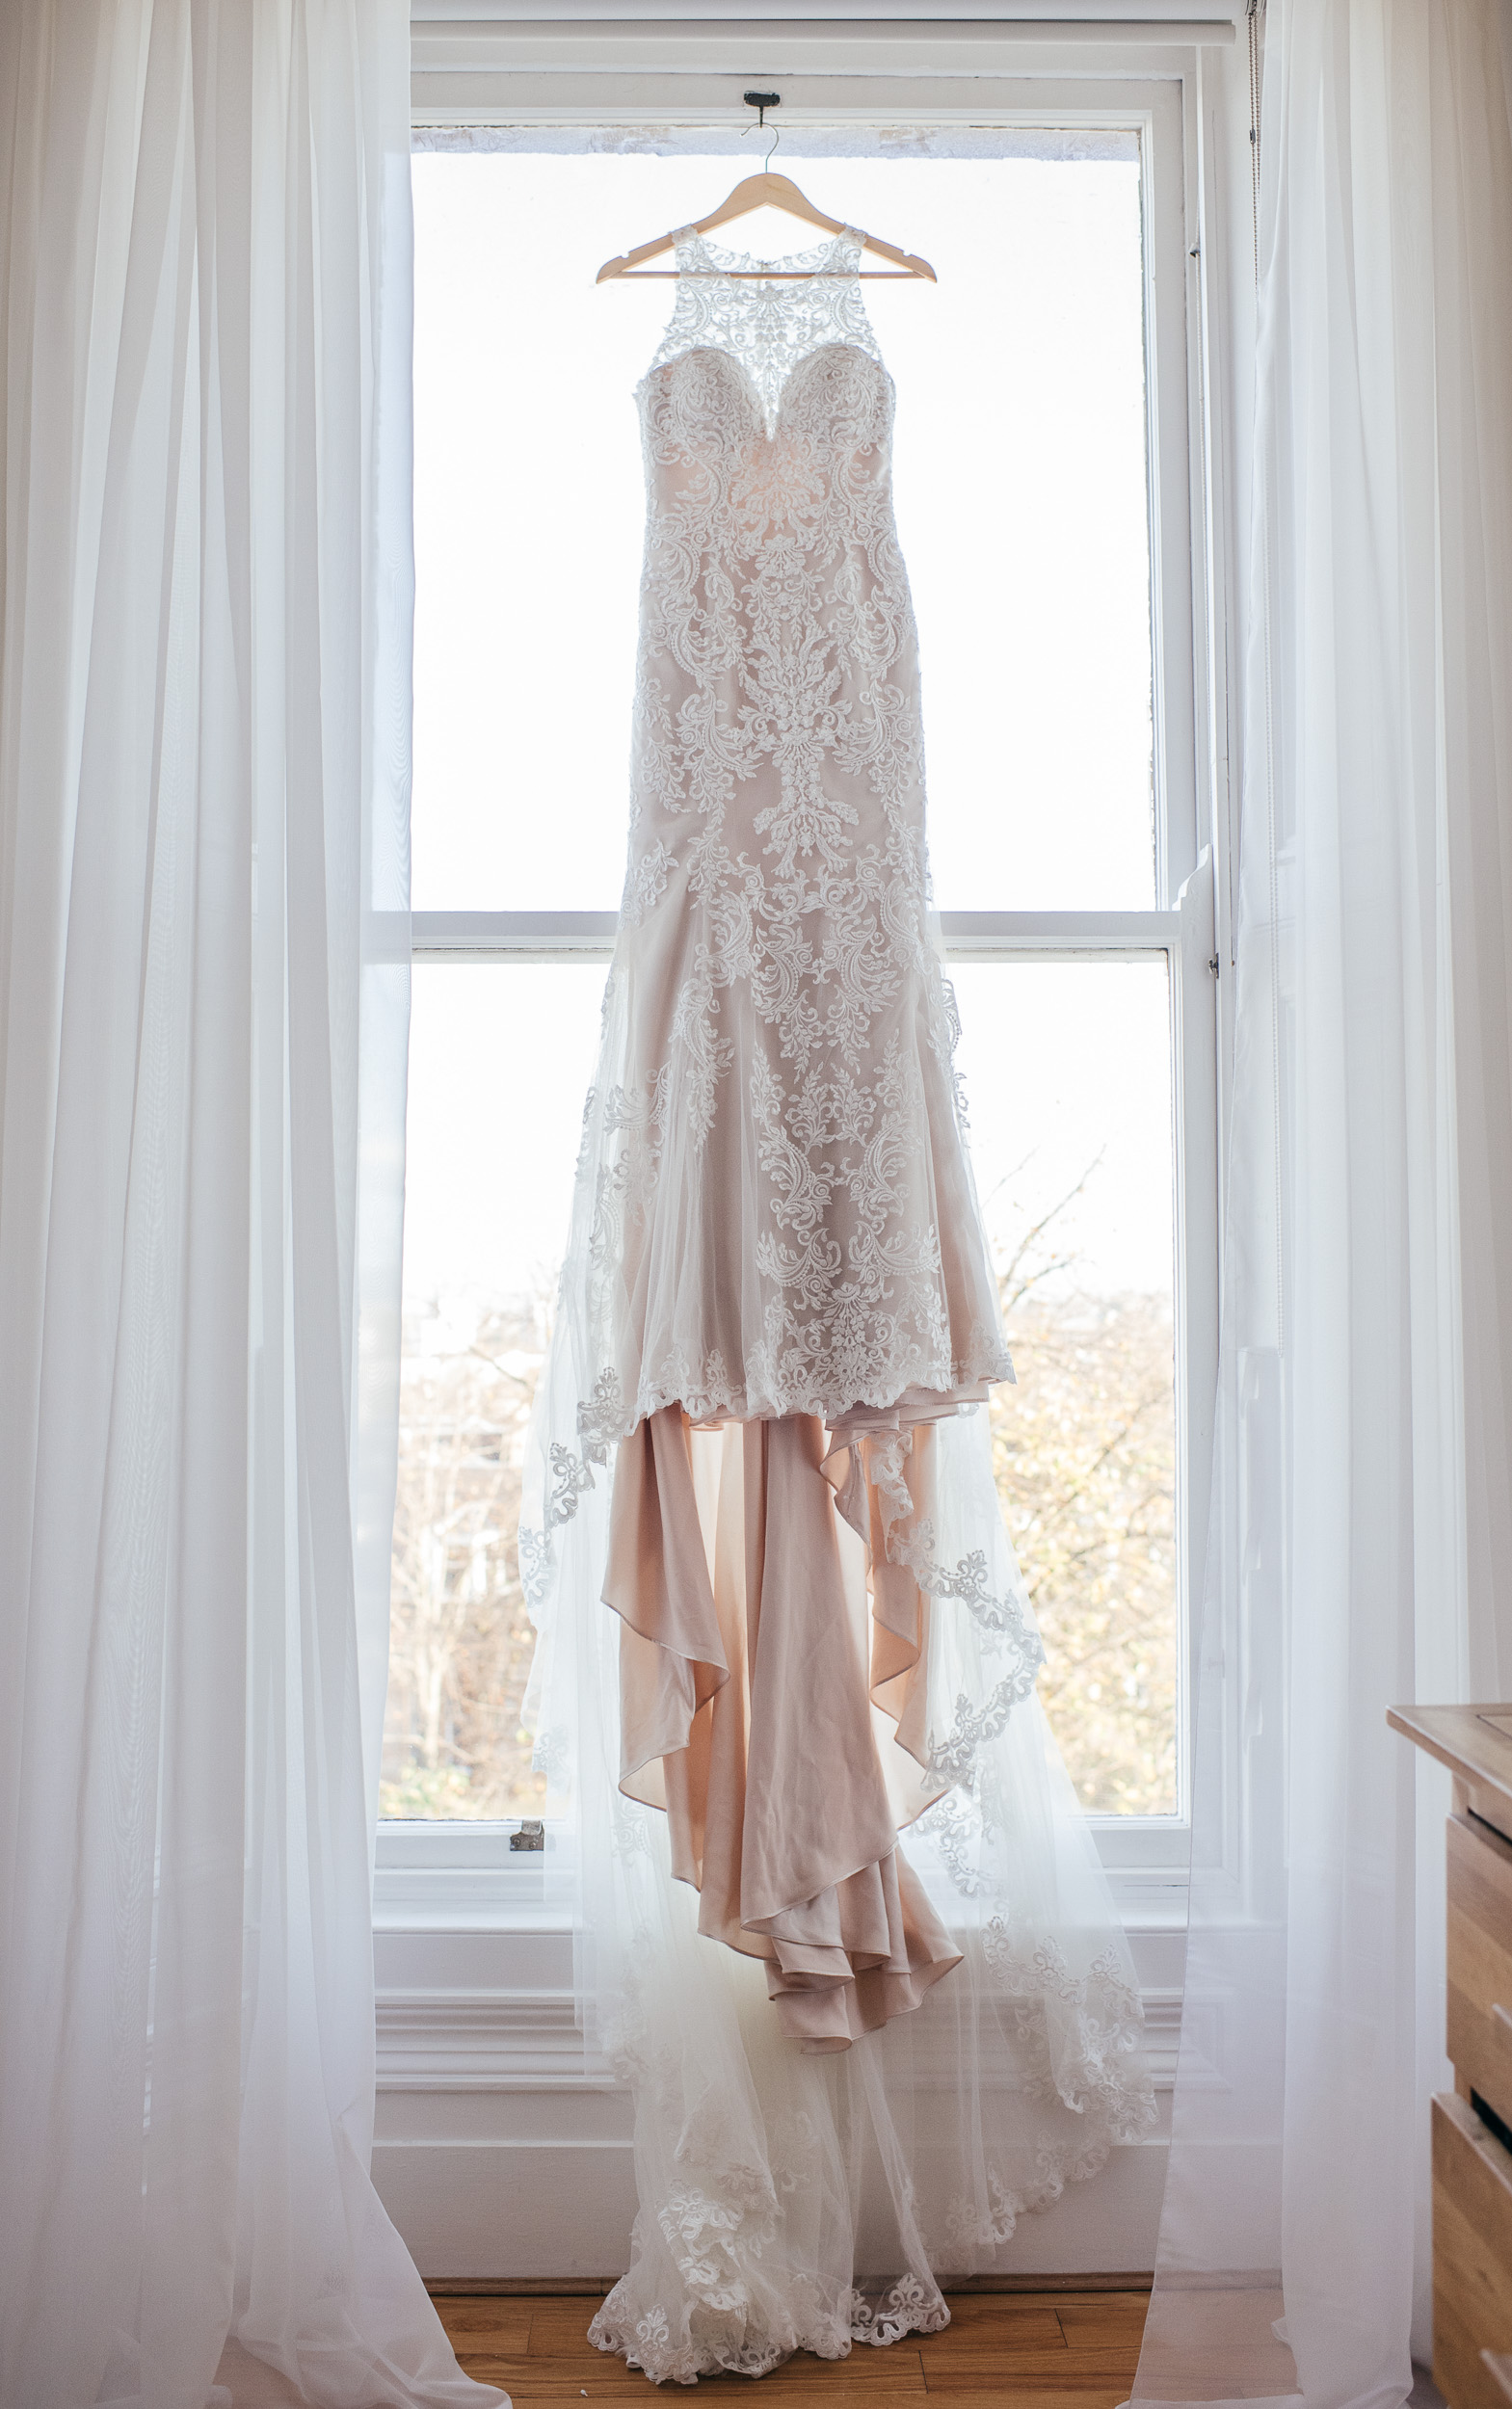 Glasgow Wedding Dress